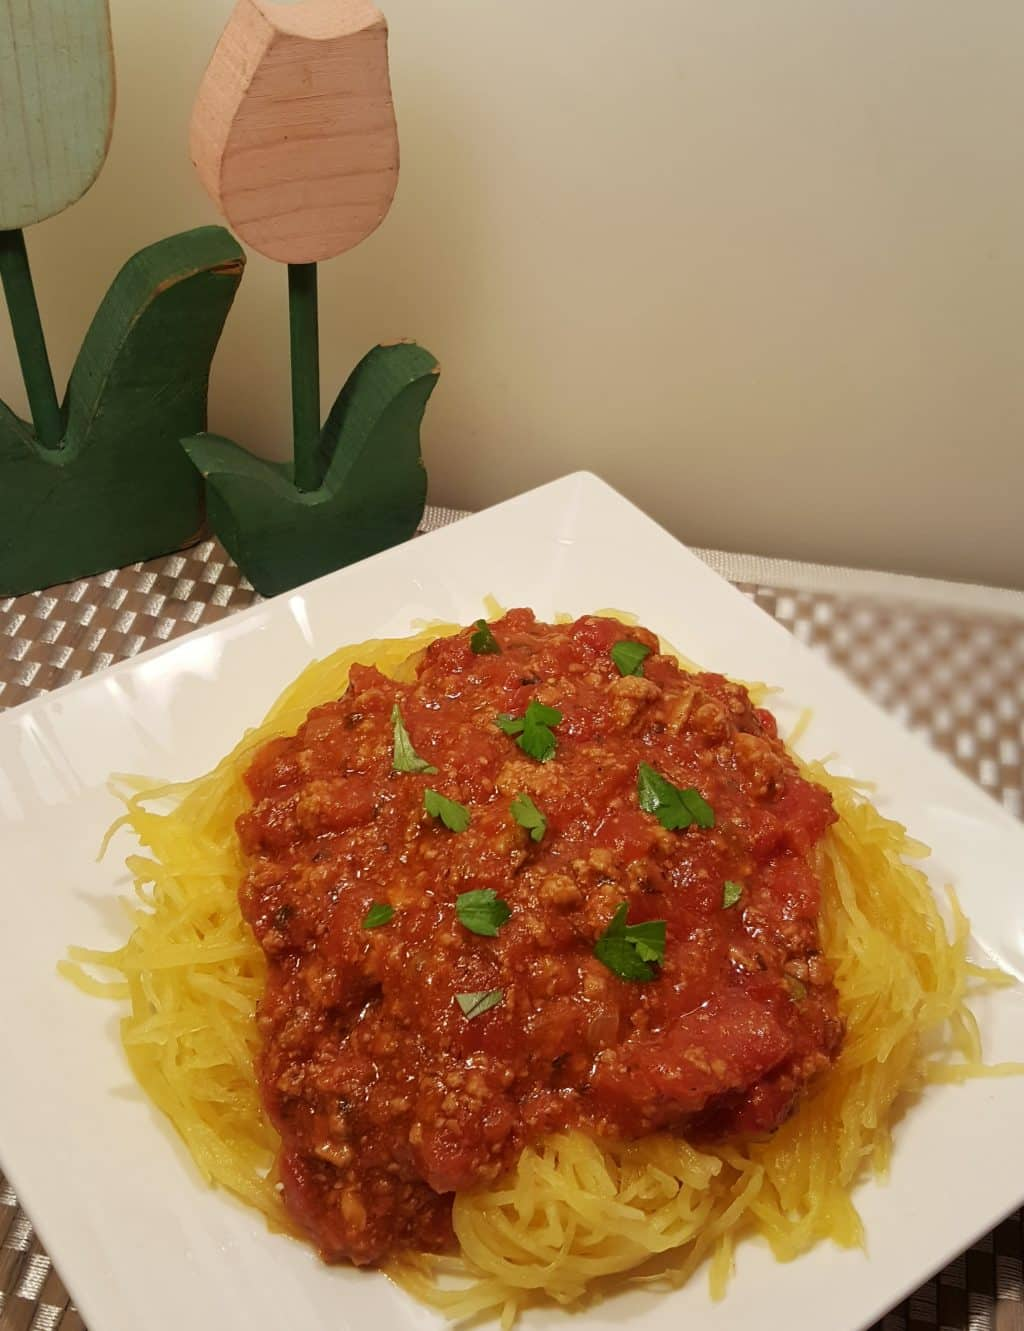 Instant Pot Pressure Cooker Spaghetti Squash and Meat Sauce Gluten Free